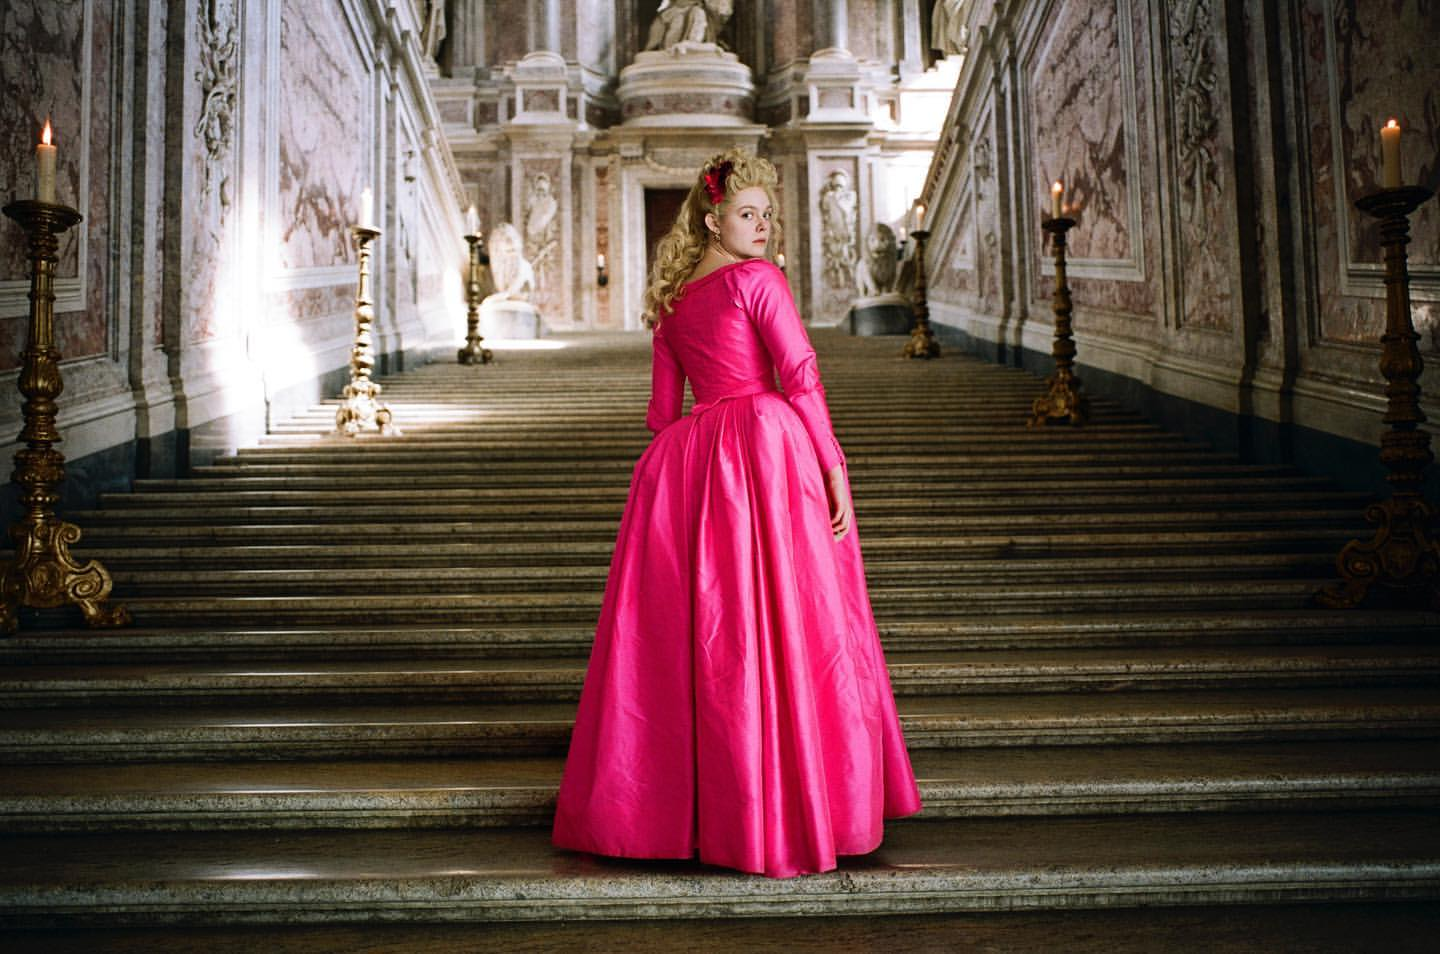 Elle Fanning in The Great (2020). Catherine, the young princess, is standing on an ornate palace stairway, her body facing away but her head turned to look at the camera. Her pale blonde hair is curled in a half updo, and she wears a hot magenta satin gown that reaches the floor.